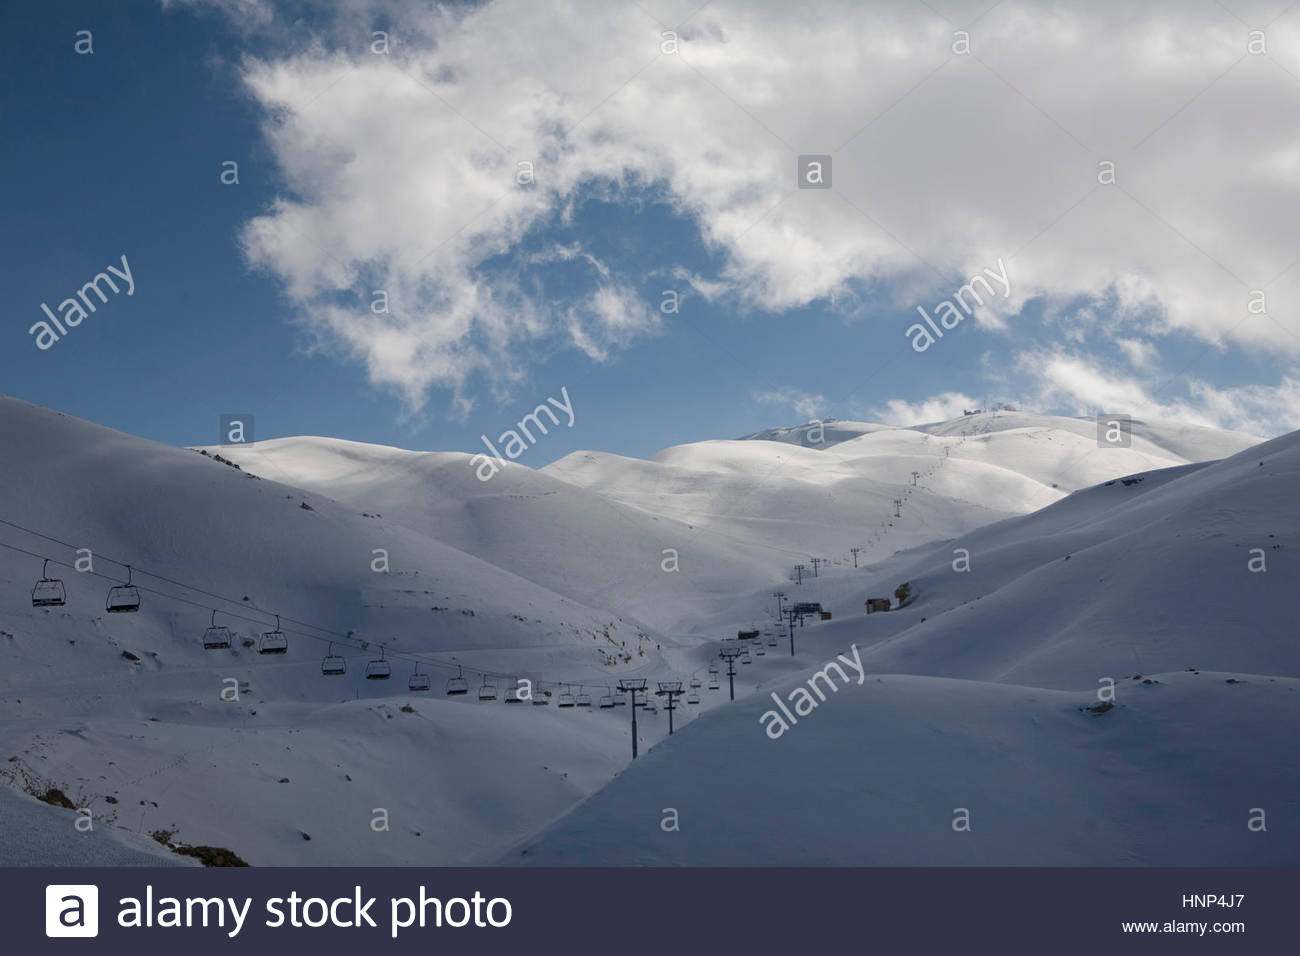 The wealthy Lebanese party scene and ski resort of Faraya near Beirut. - Stock Image